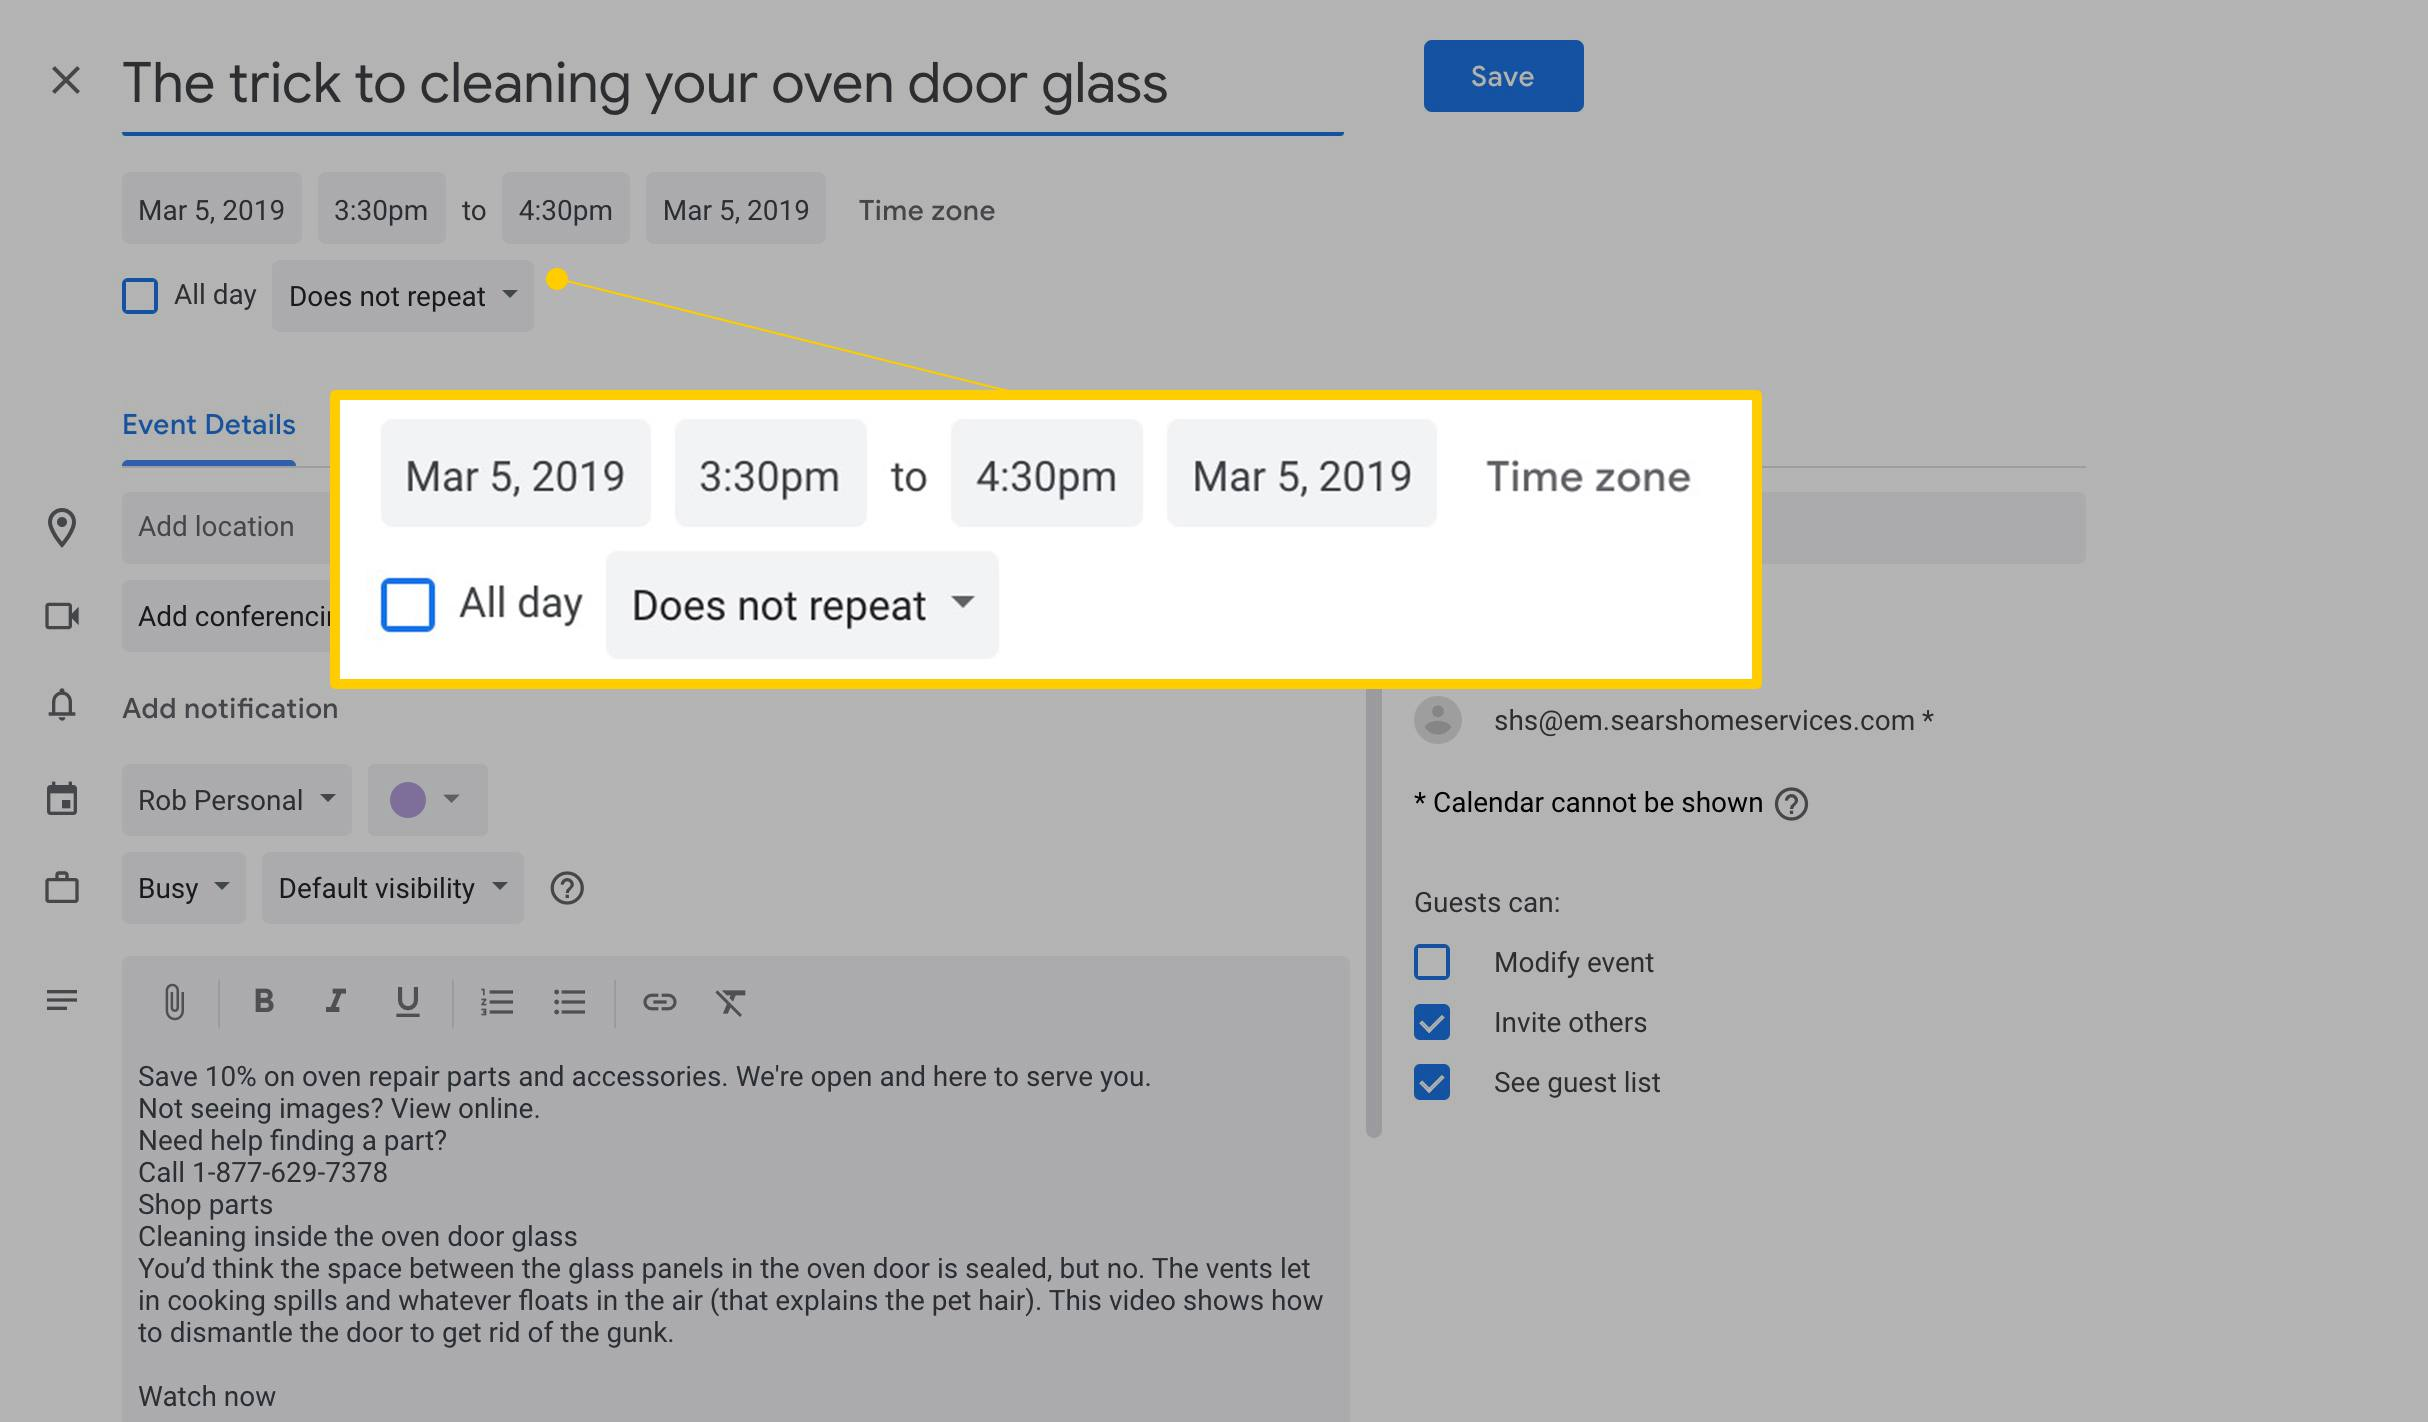 How to Create a Google Calendar Event From a Gmail Message